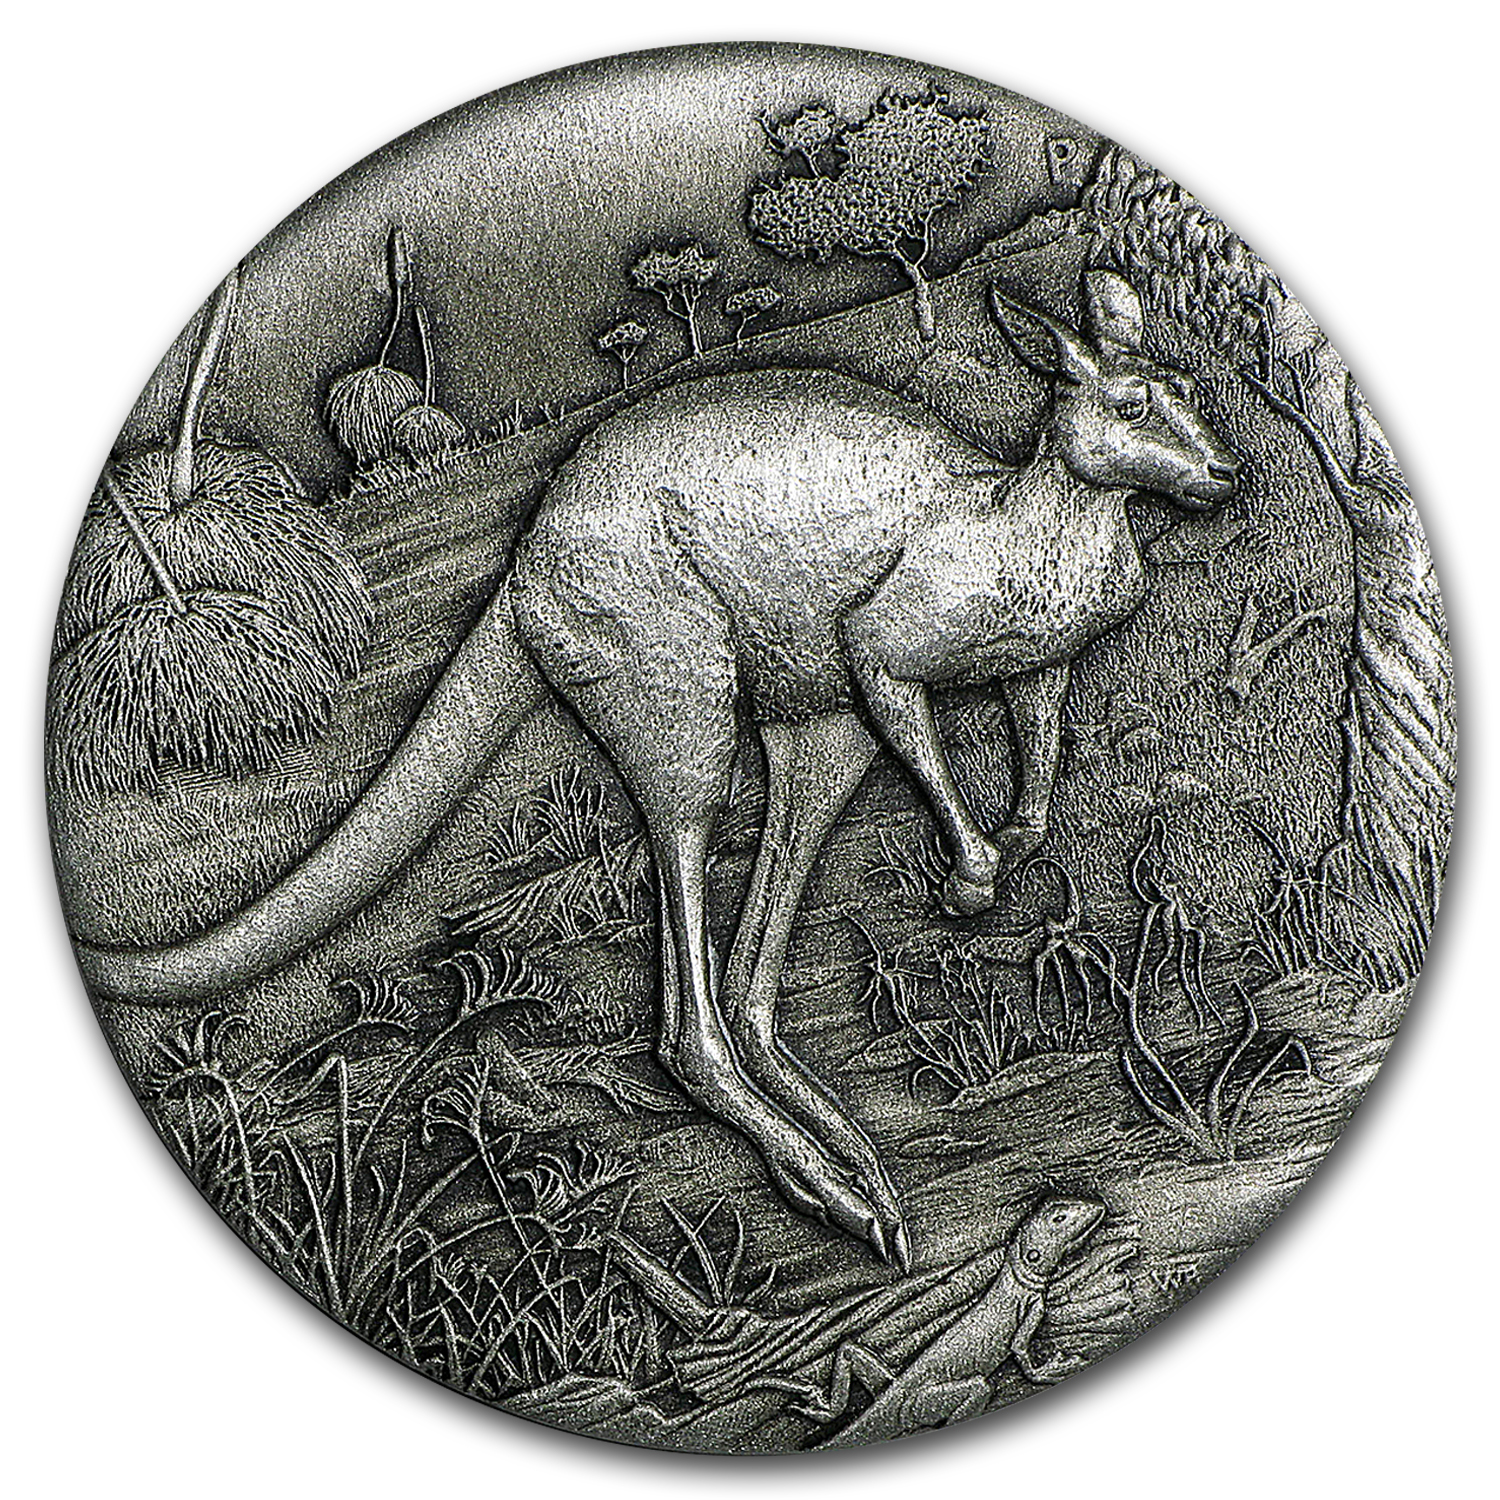 2016 Australia 2 oz Silver High Relief Kangaroo Proof (Antiqued)